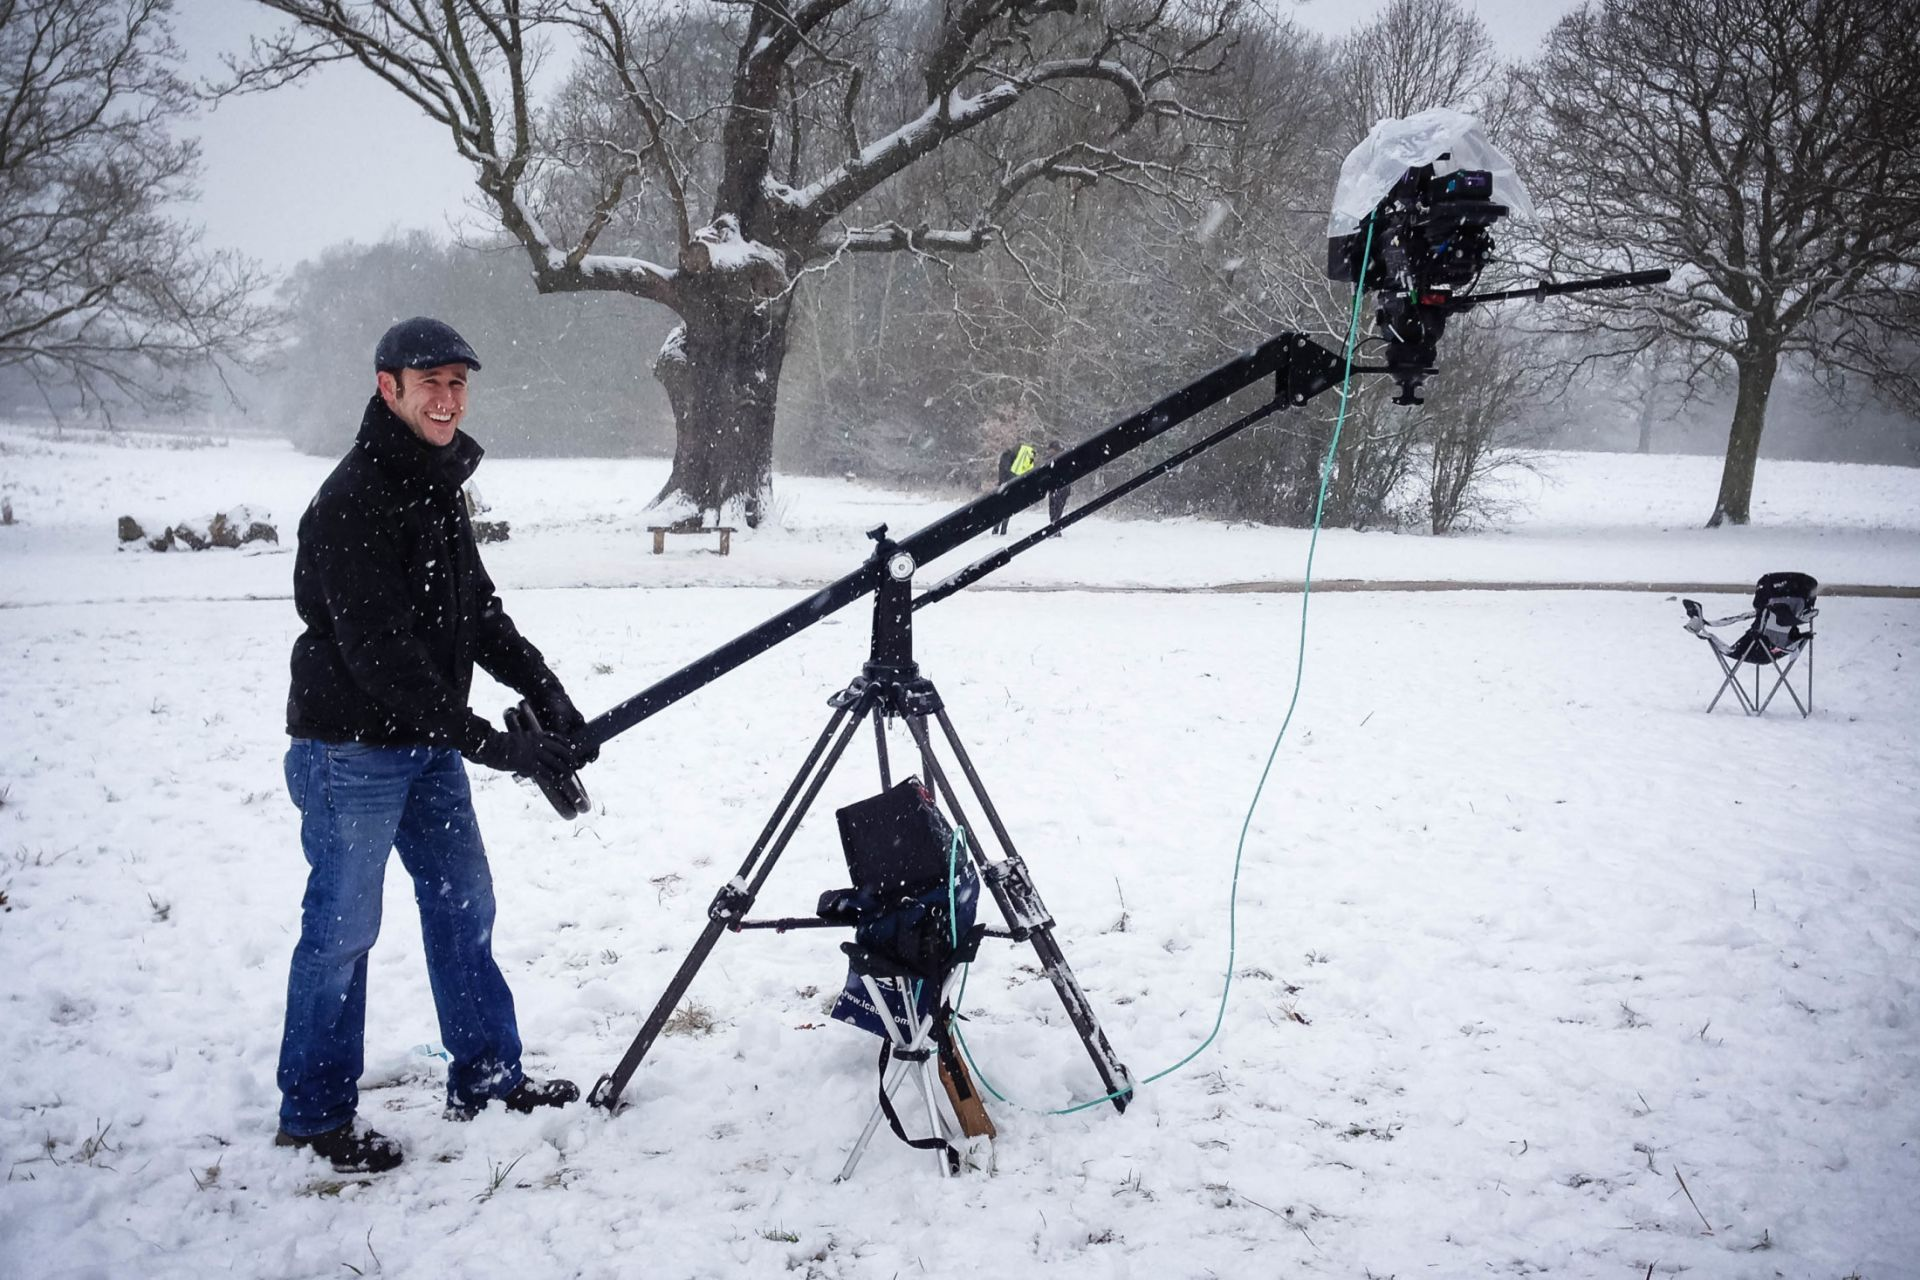 Cameraman with Jib Camera